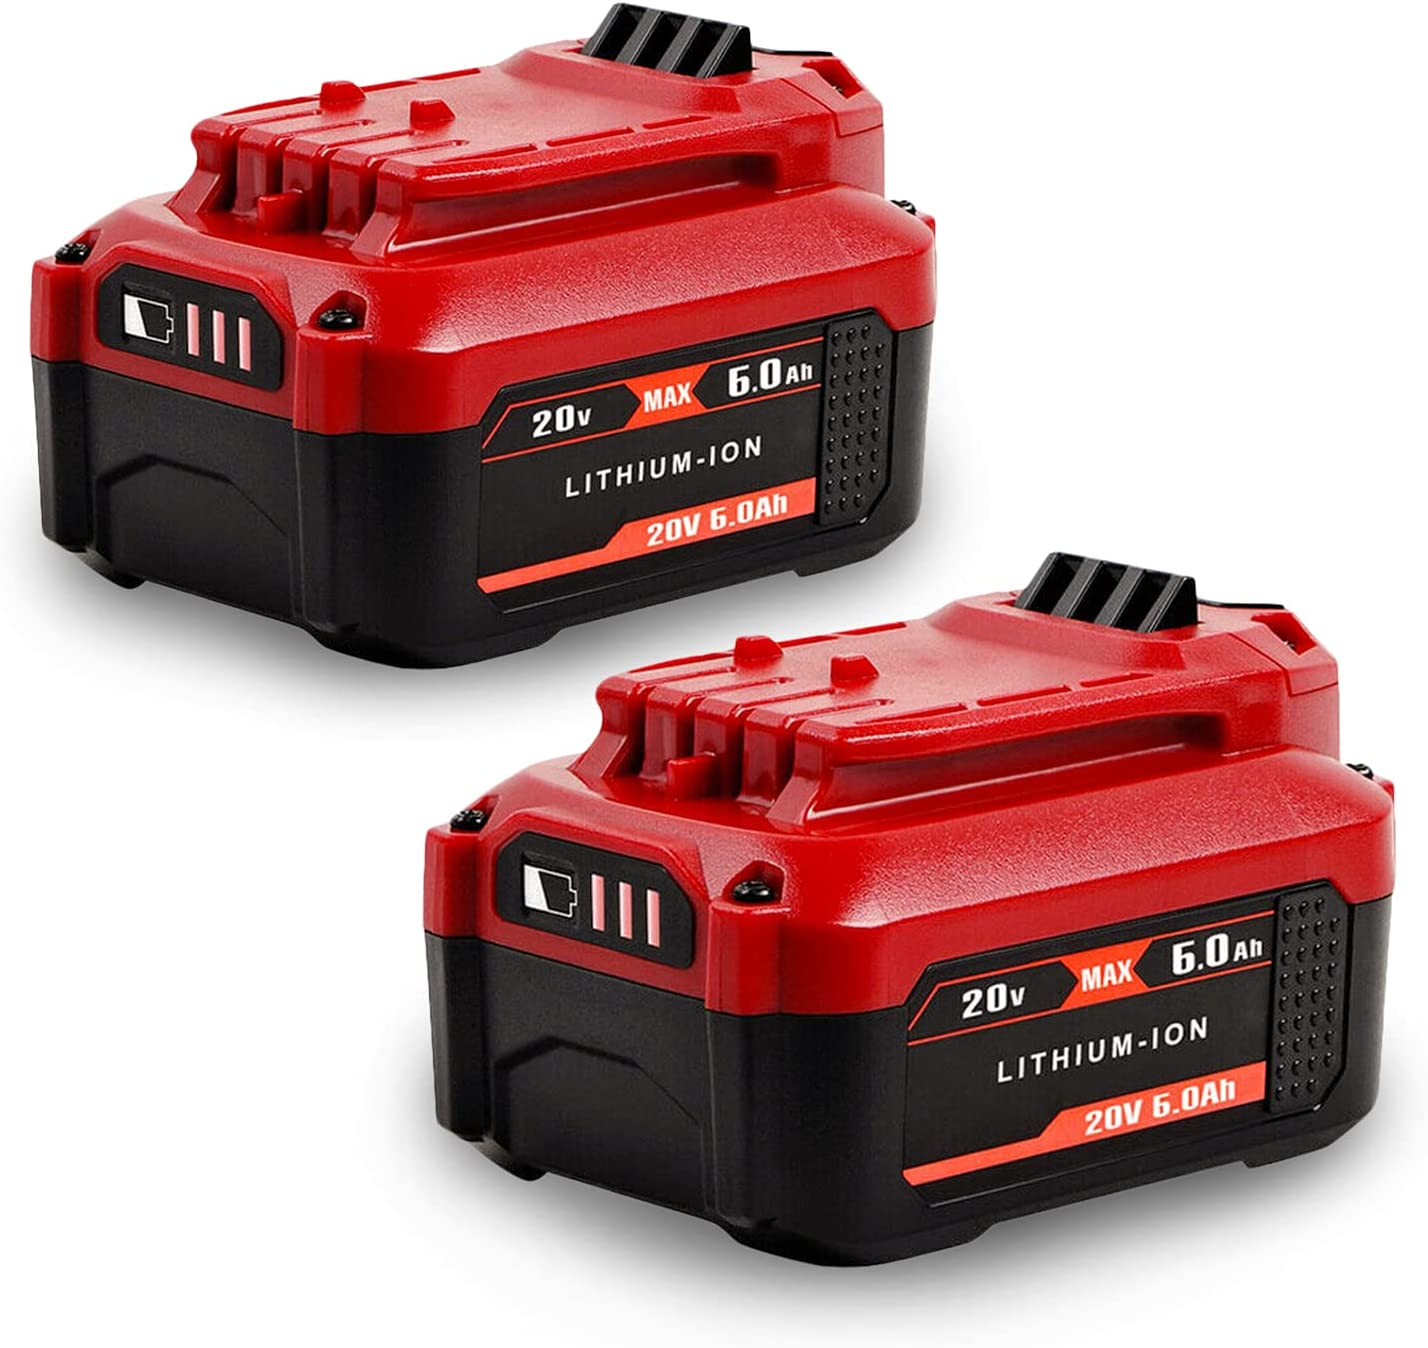 【Upgraded 6000mAh】 Reservation 20V CMCB204 Battery Replace High Fresno Mall Capacity